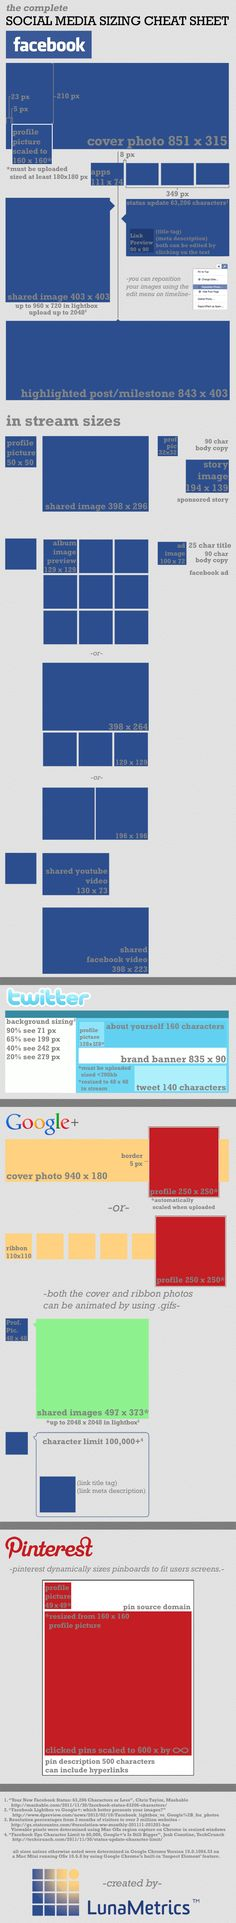 Social Media Cheat Sheet by LunaMetrics